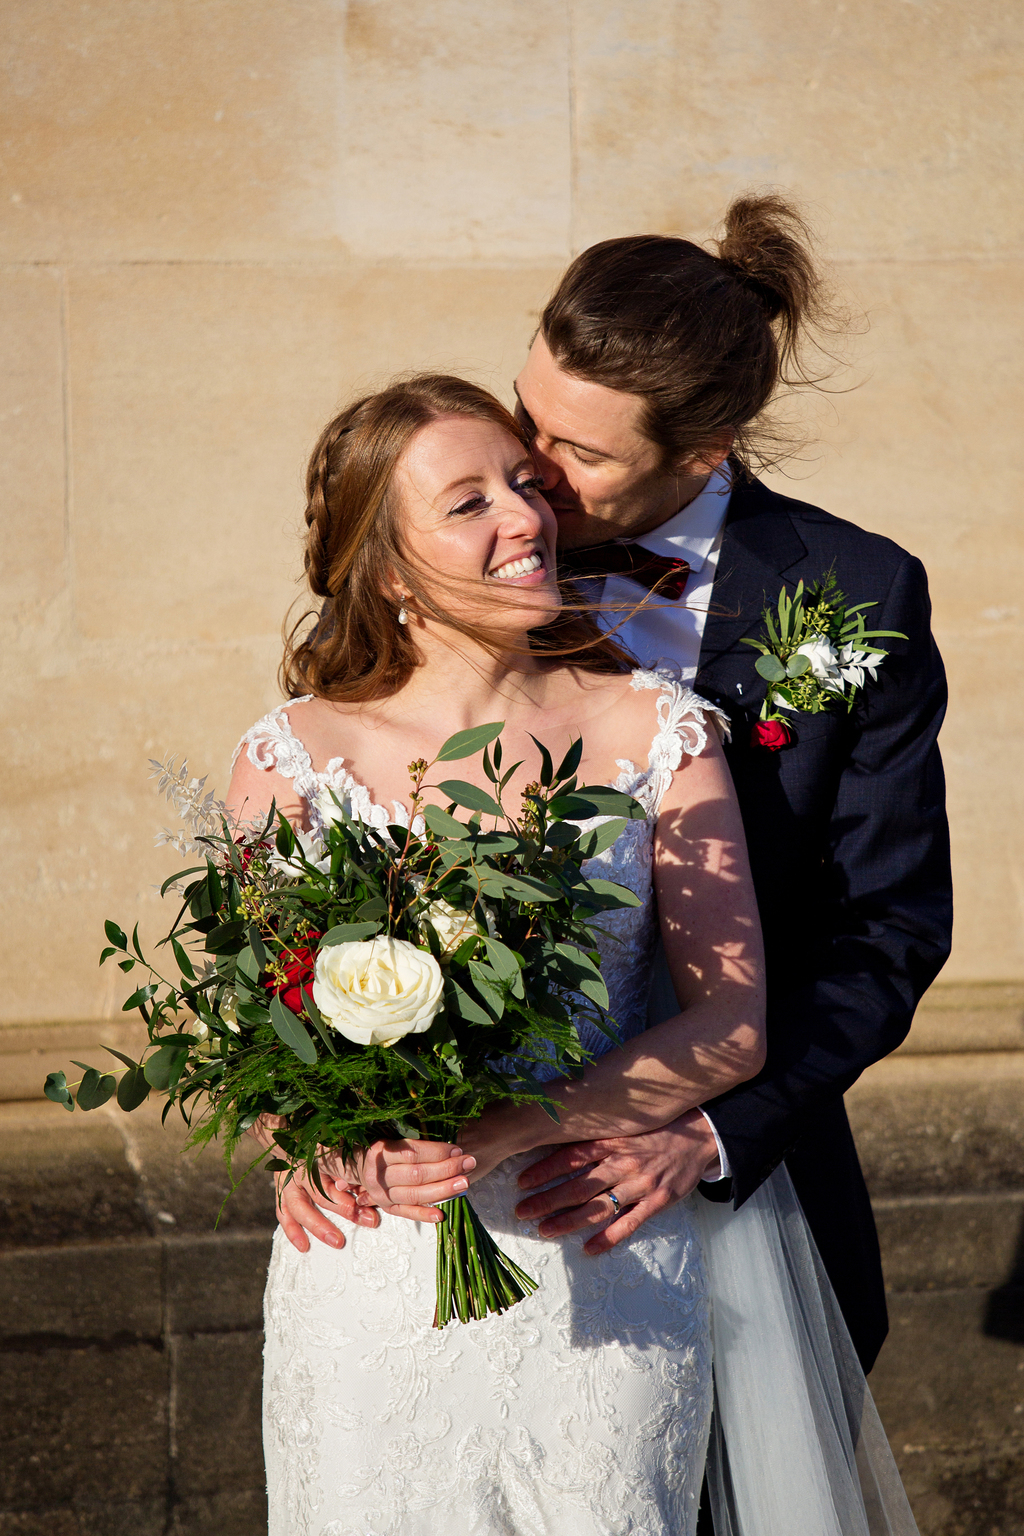 Real wedding in 2020 by Bristol wedding photographer Martin Dabek on English-Wedding.com